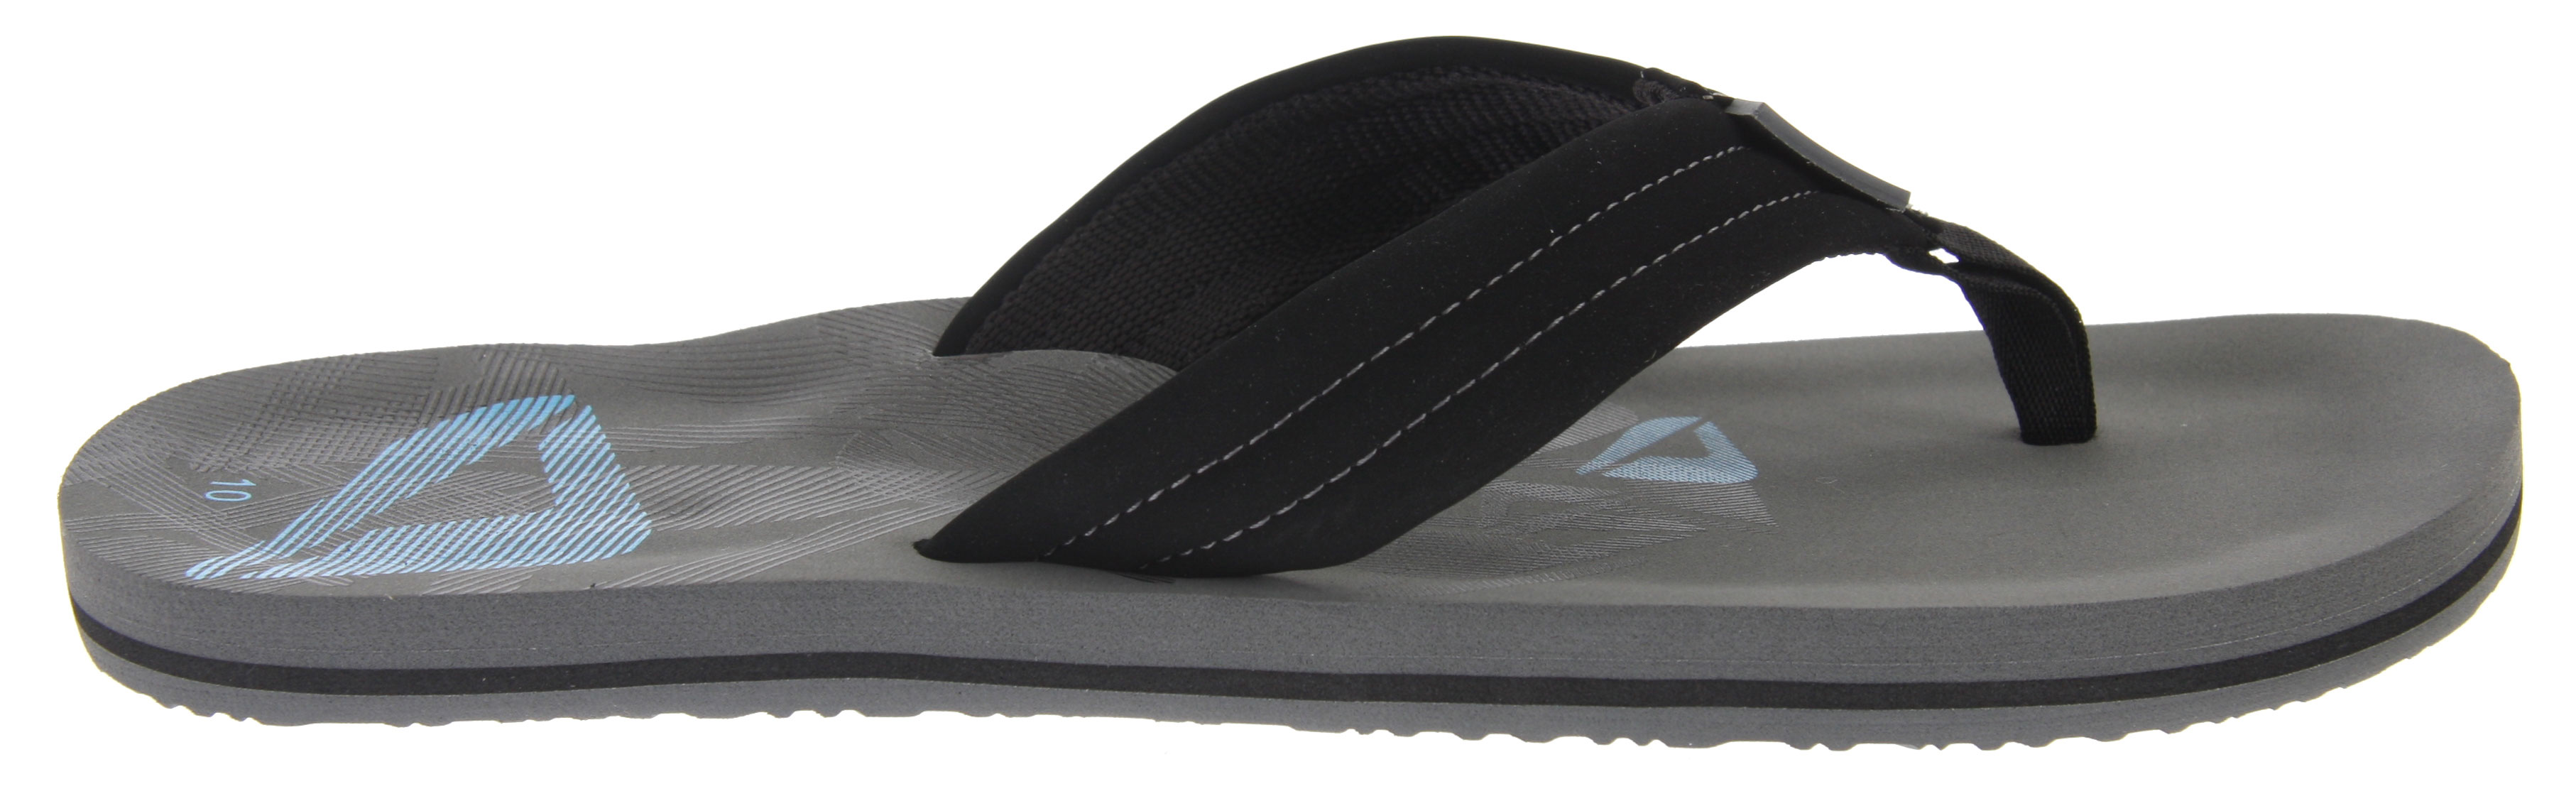 Surf Key Features of the Reef Seared Ahi Sandals: Soft, Comfortable Water Friendly Synthetic Nubuck Upper Soft Woven Lining Contoured Eva Footbed With Anatomical Arch Support Printed Footbed Graphics Grippy Molded Reef Rubber Outsole - $13.95